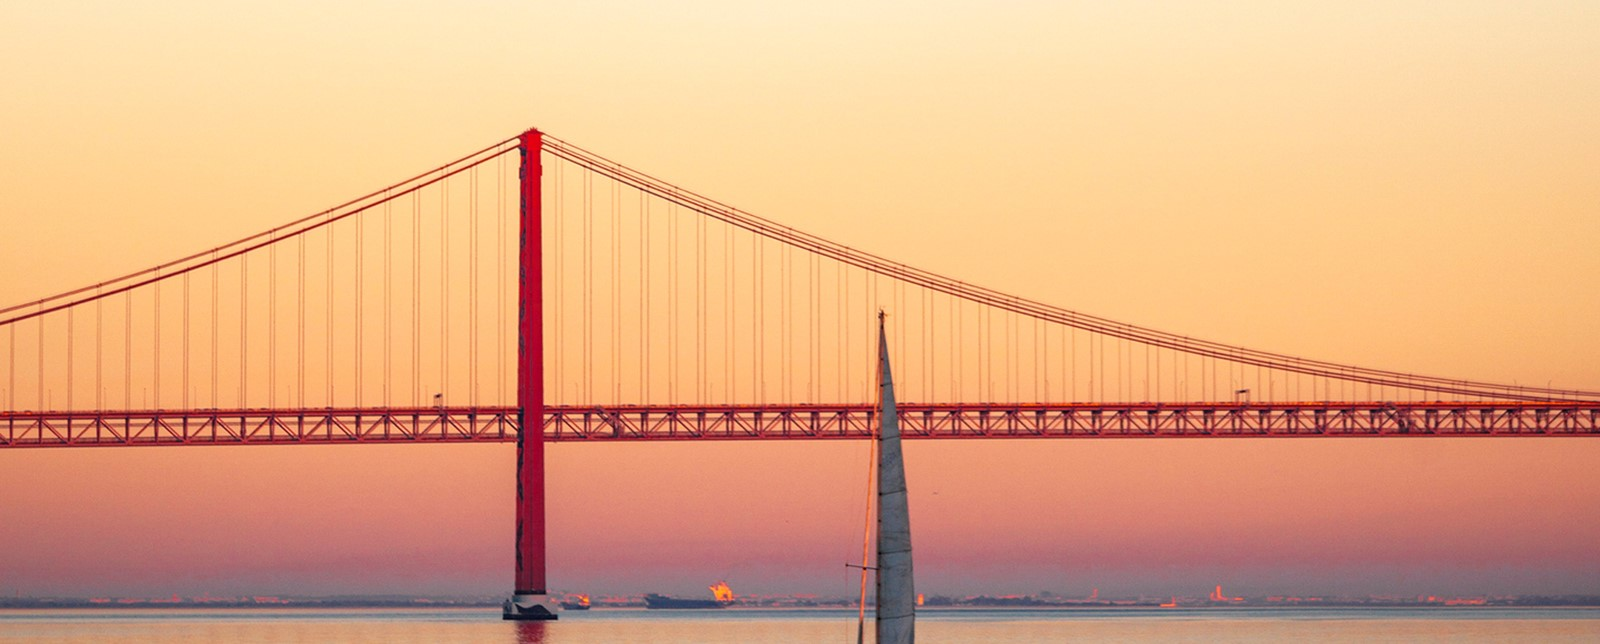 lisbon tagus river sunset yacht